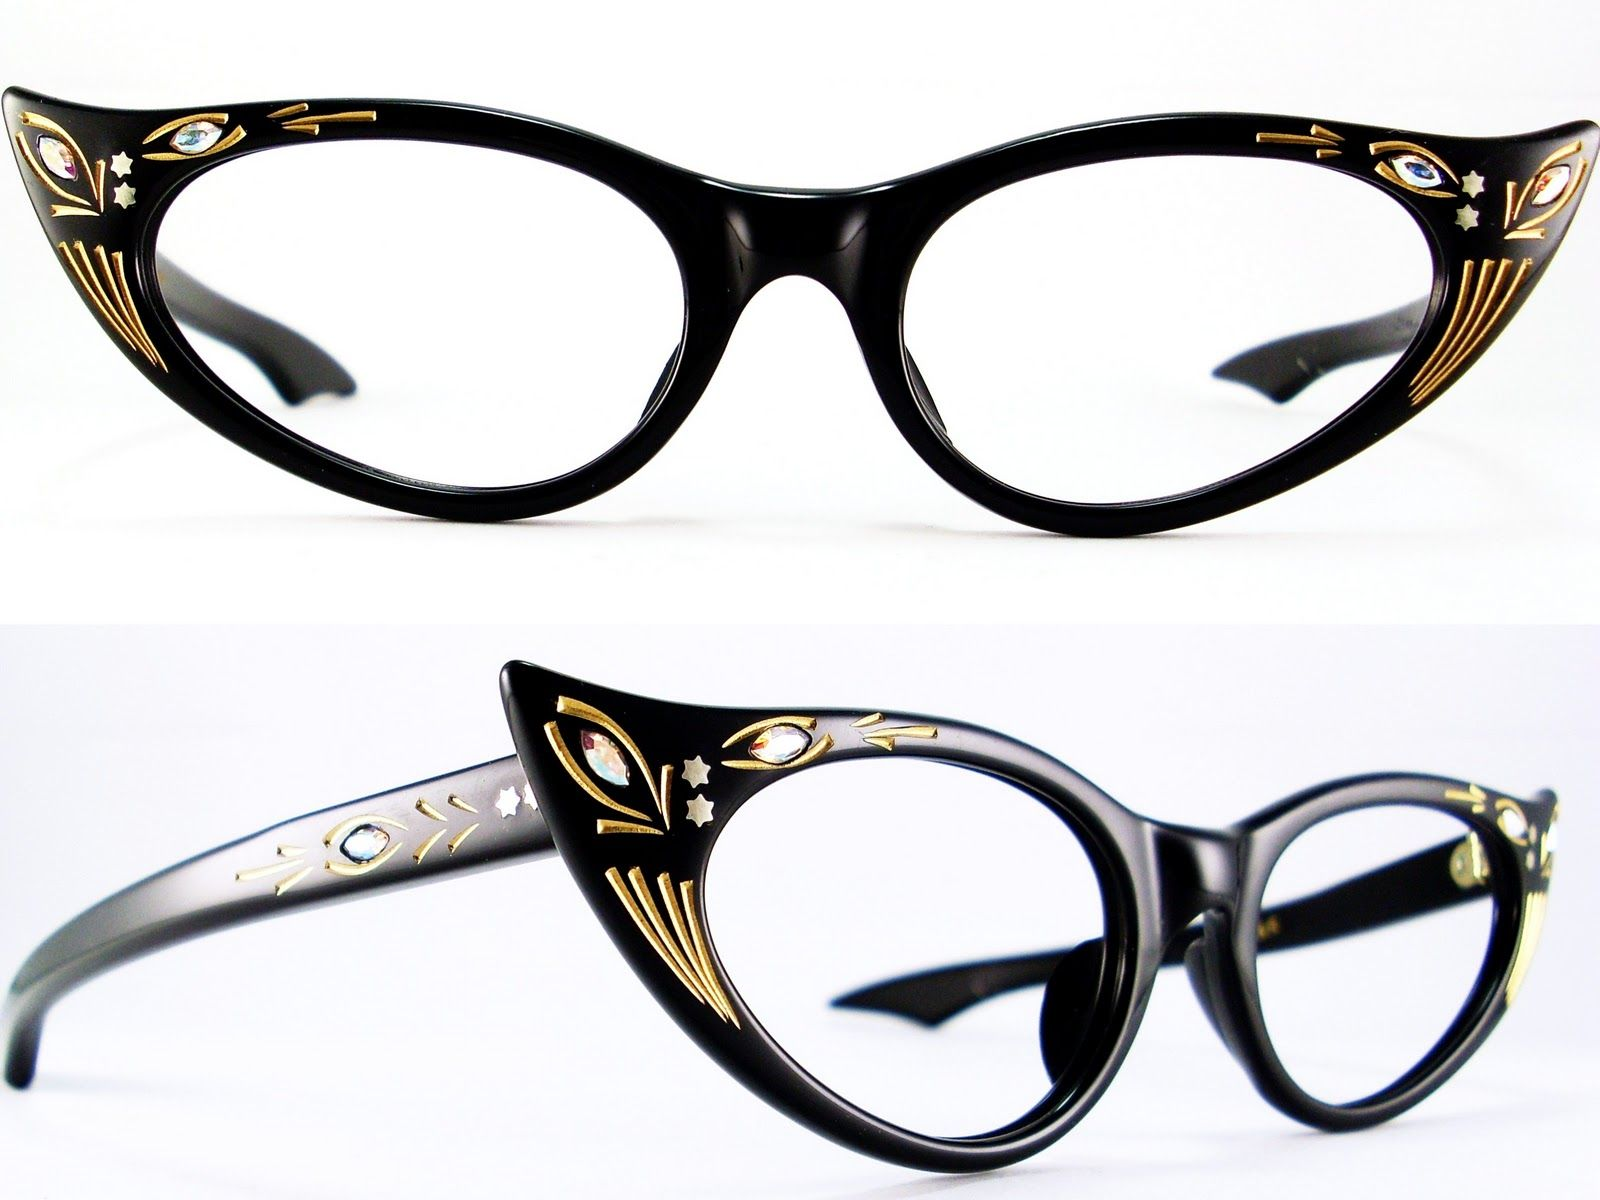 b4d1ea4c2de7 Vintage Eyeglasses Frames Eyewear Sunglasses 50S  VINTAGE 50s CAT EYE  GLASSES SUNGLASS FRAME GLASSES